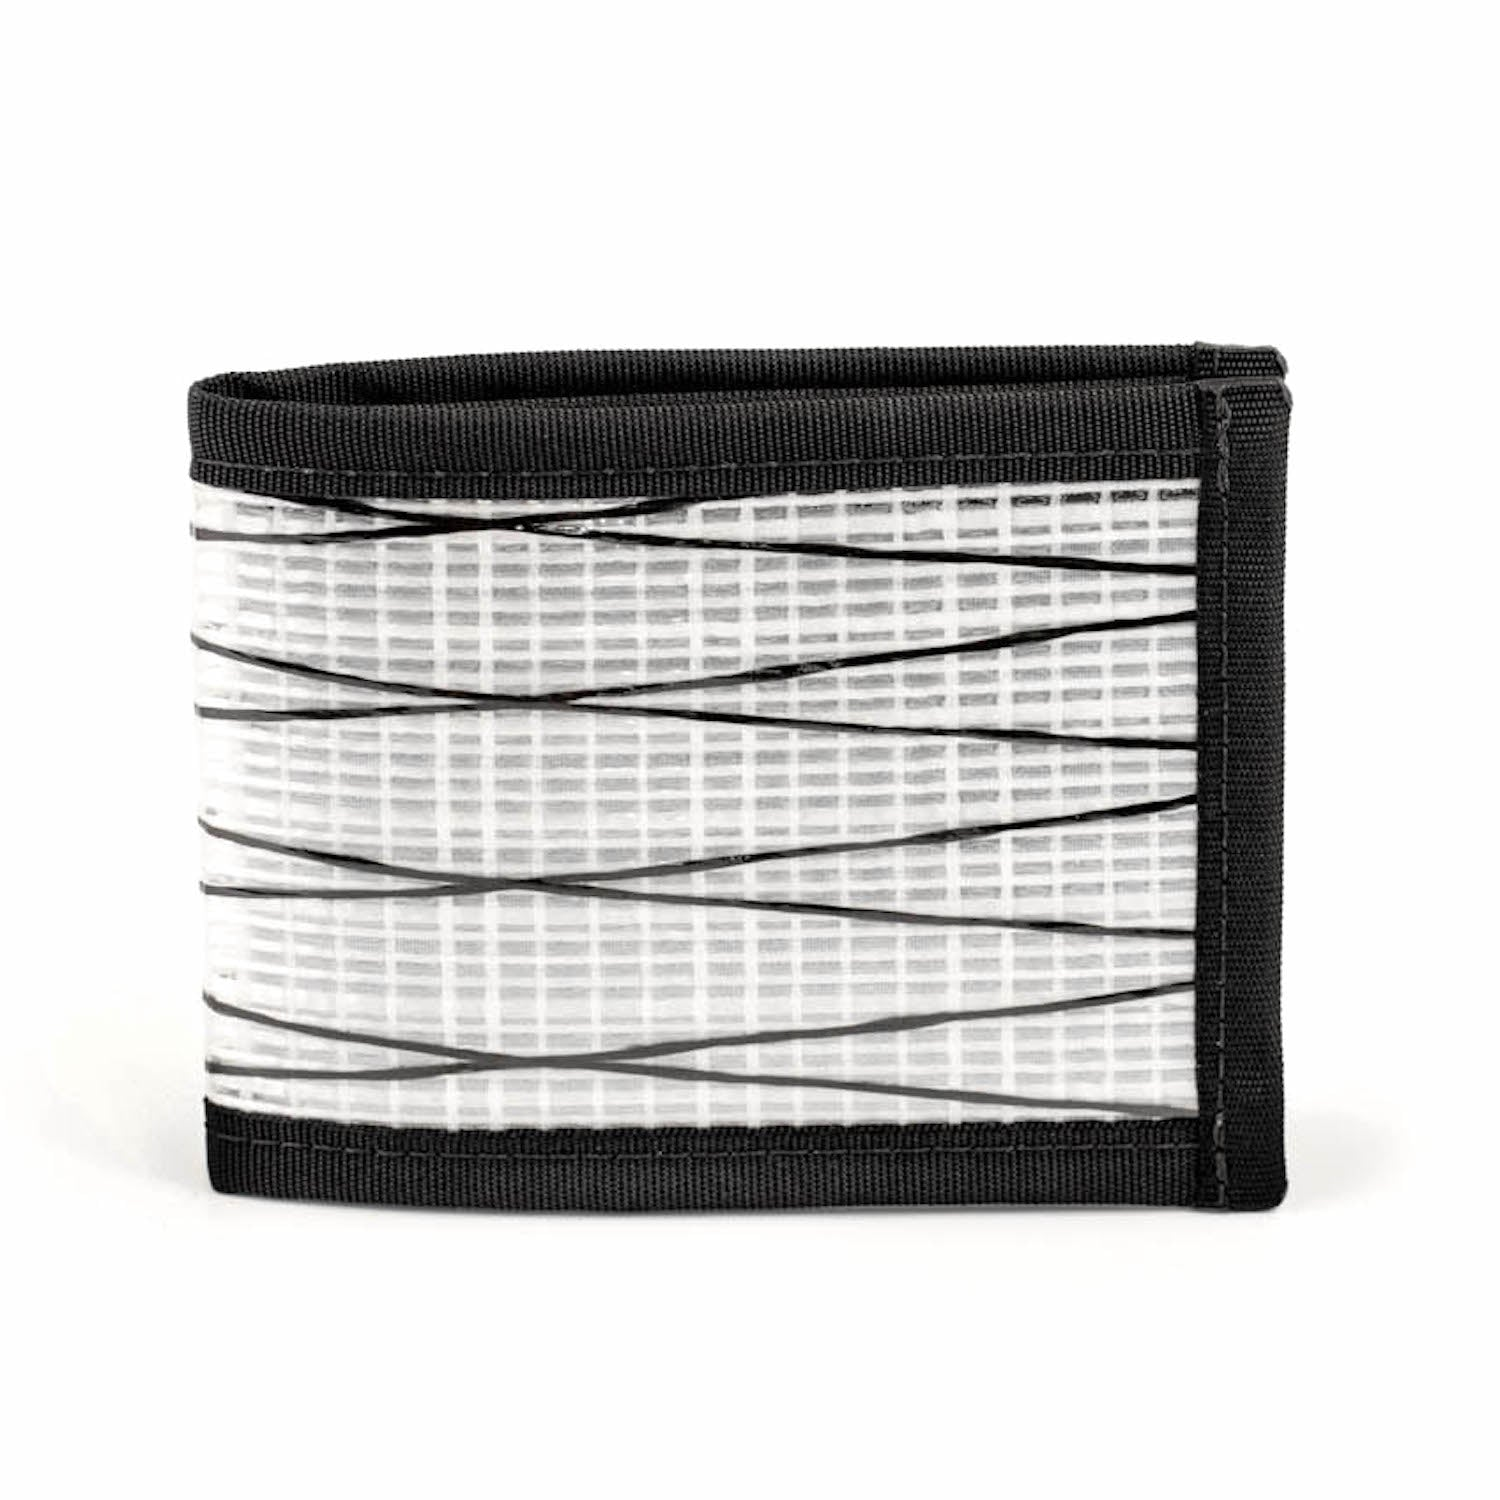 Flowfold White Ultralight Recycled Sailcloth Bifold Wallet Made in Maine